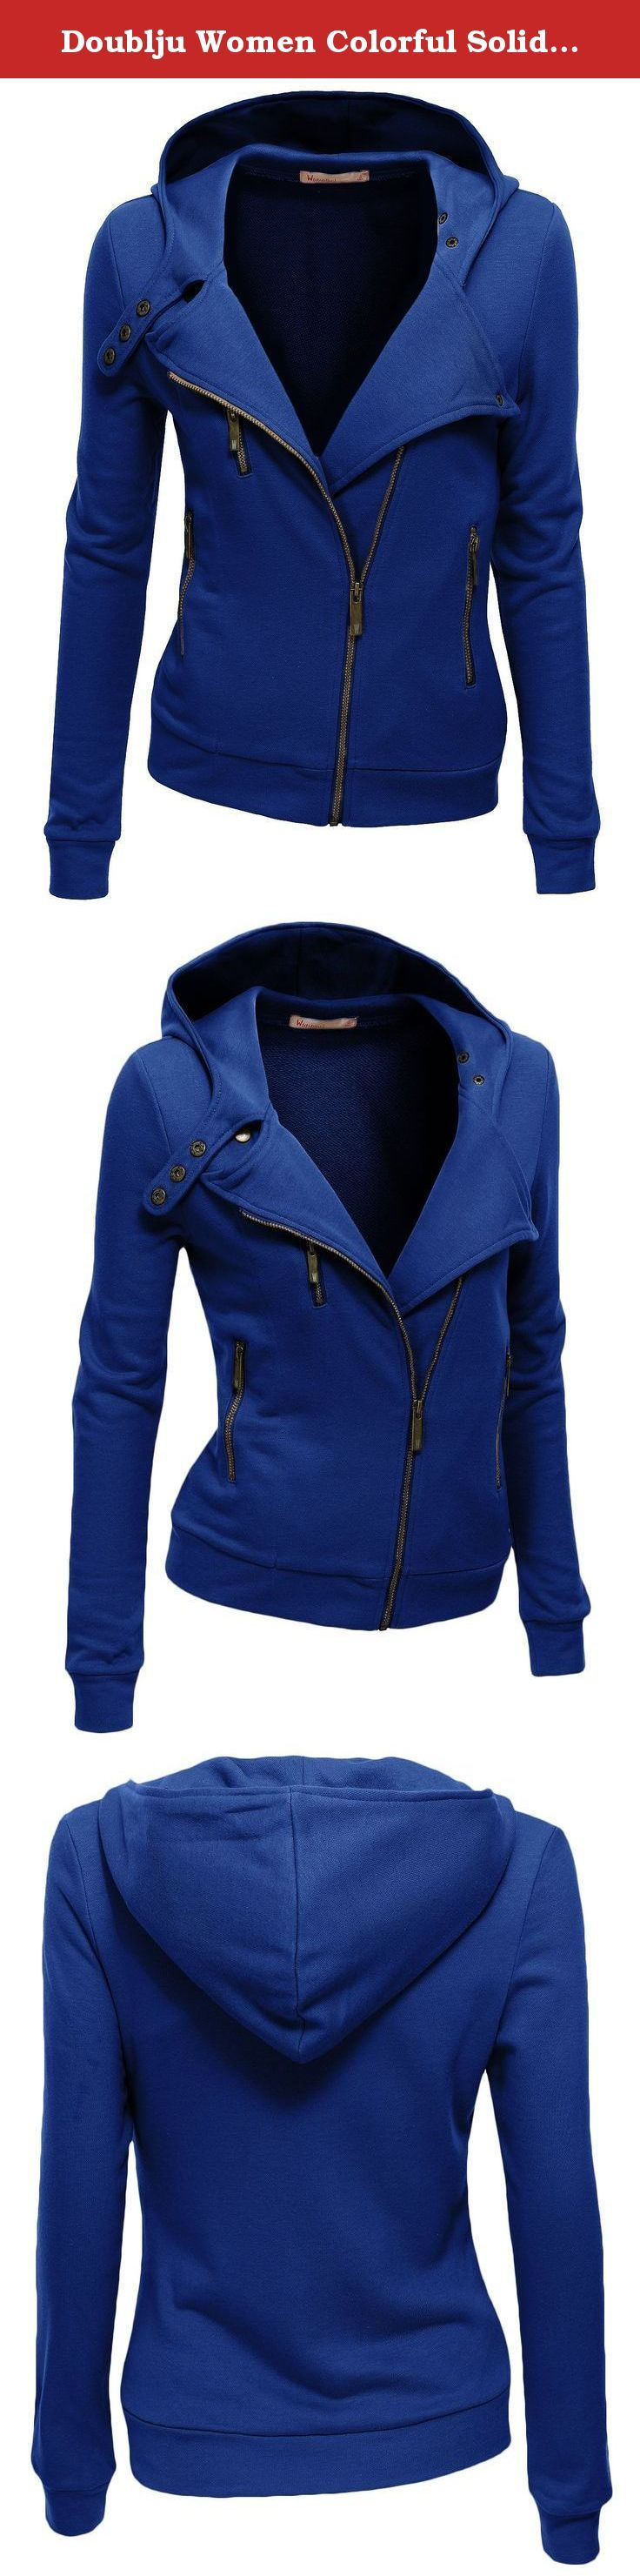 Doublju Women Colorful Solid Color 3/4 Sleeve Big Size Outwear ROYALBLUE,XL. Doublju Women Colorful Easy Wear 3/4 Sleeve Big Size Outwear ROYALBLUE,XL coats kids green day hoodie zip up hoodie women grey hoodie bodybuilding hoodies womens plain hoodies superhero hoodies armour hoodie womens zip up hoodies ladies sweatshirts arcteryx gamma mx hoody zip up womens hoodies hoodie printing cheap Women's Double-Breasted Wool/Cashmere Coat cool hoodie Hooded Sweater Knit Walker Coat enjoi…